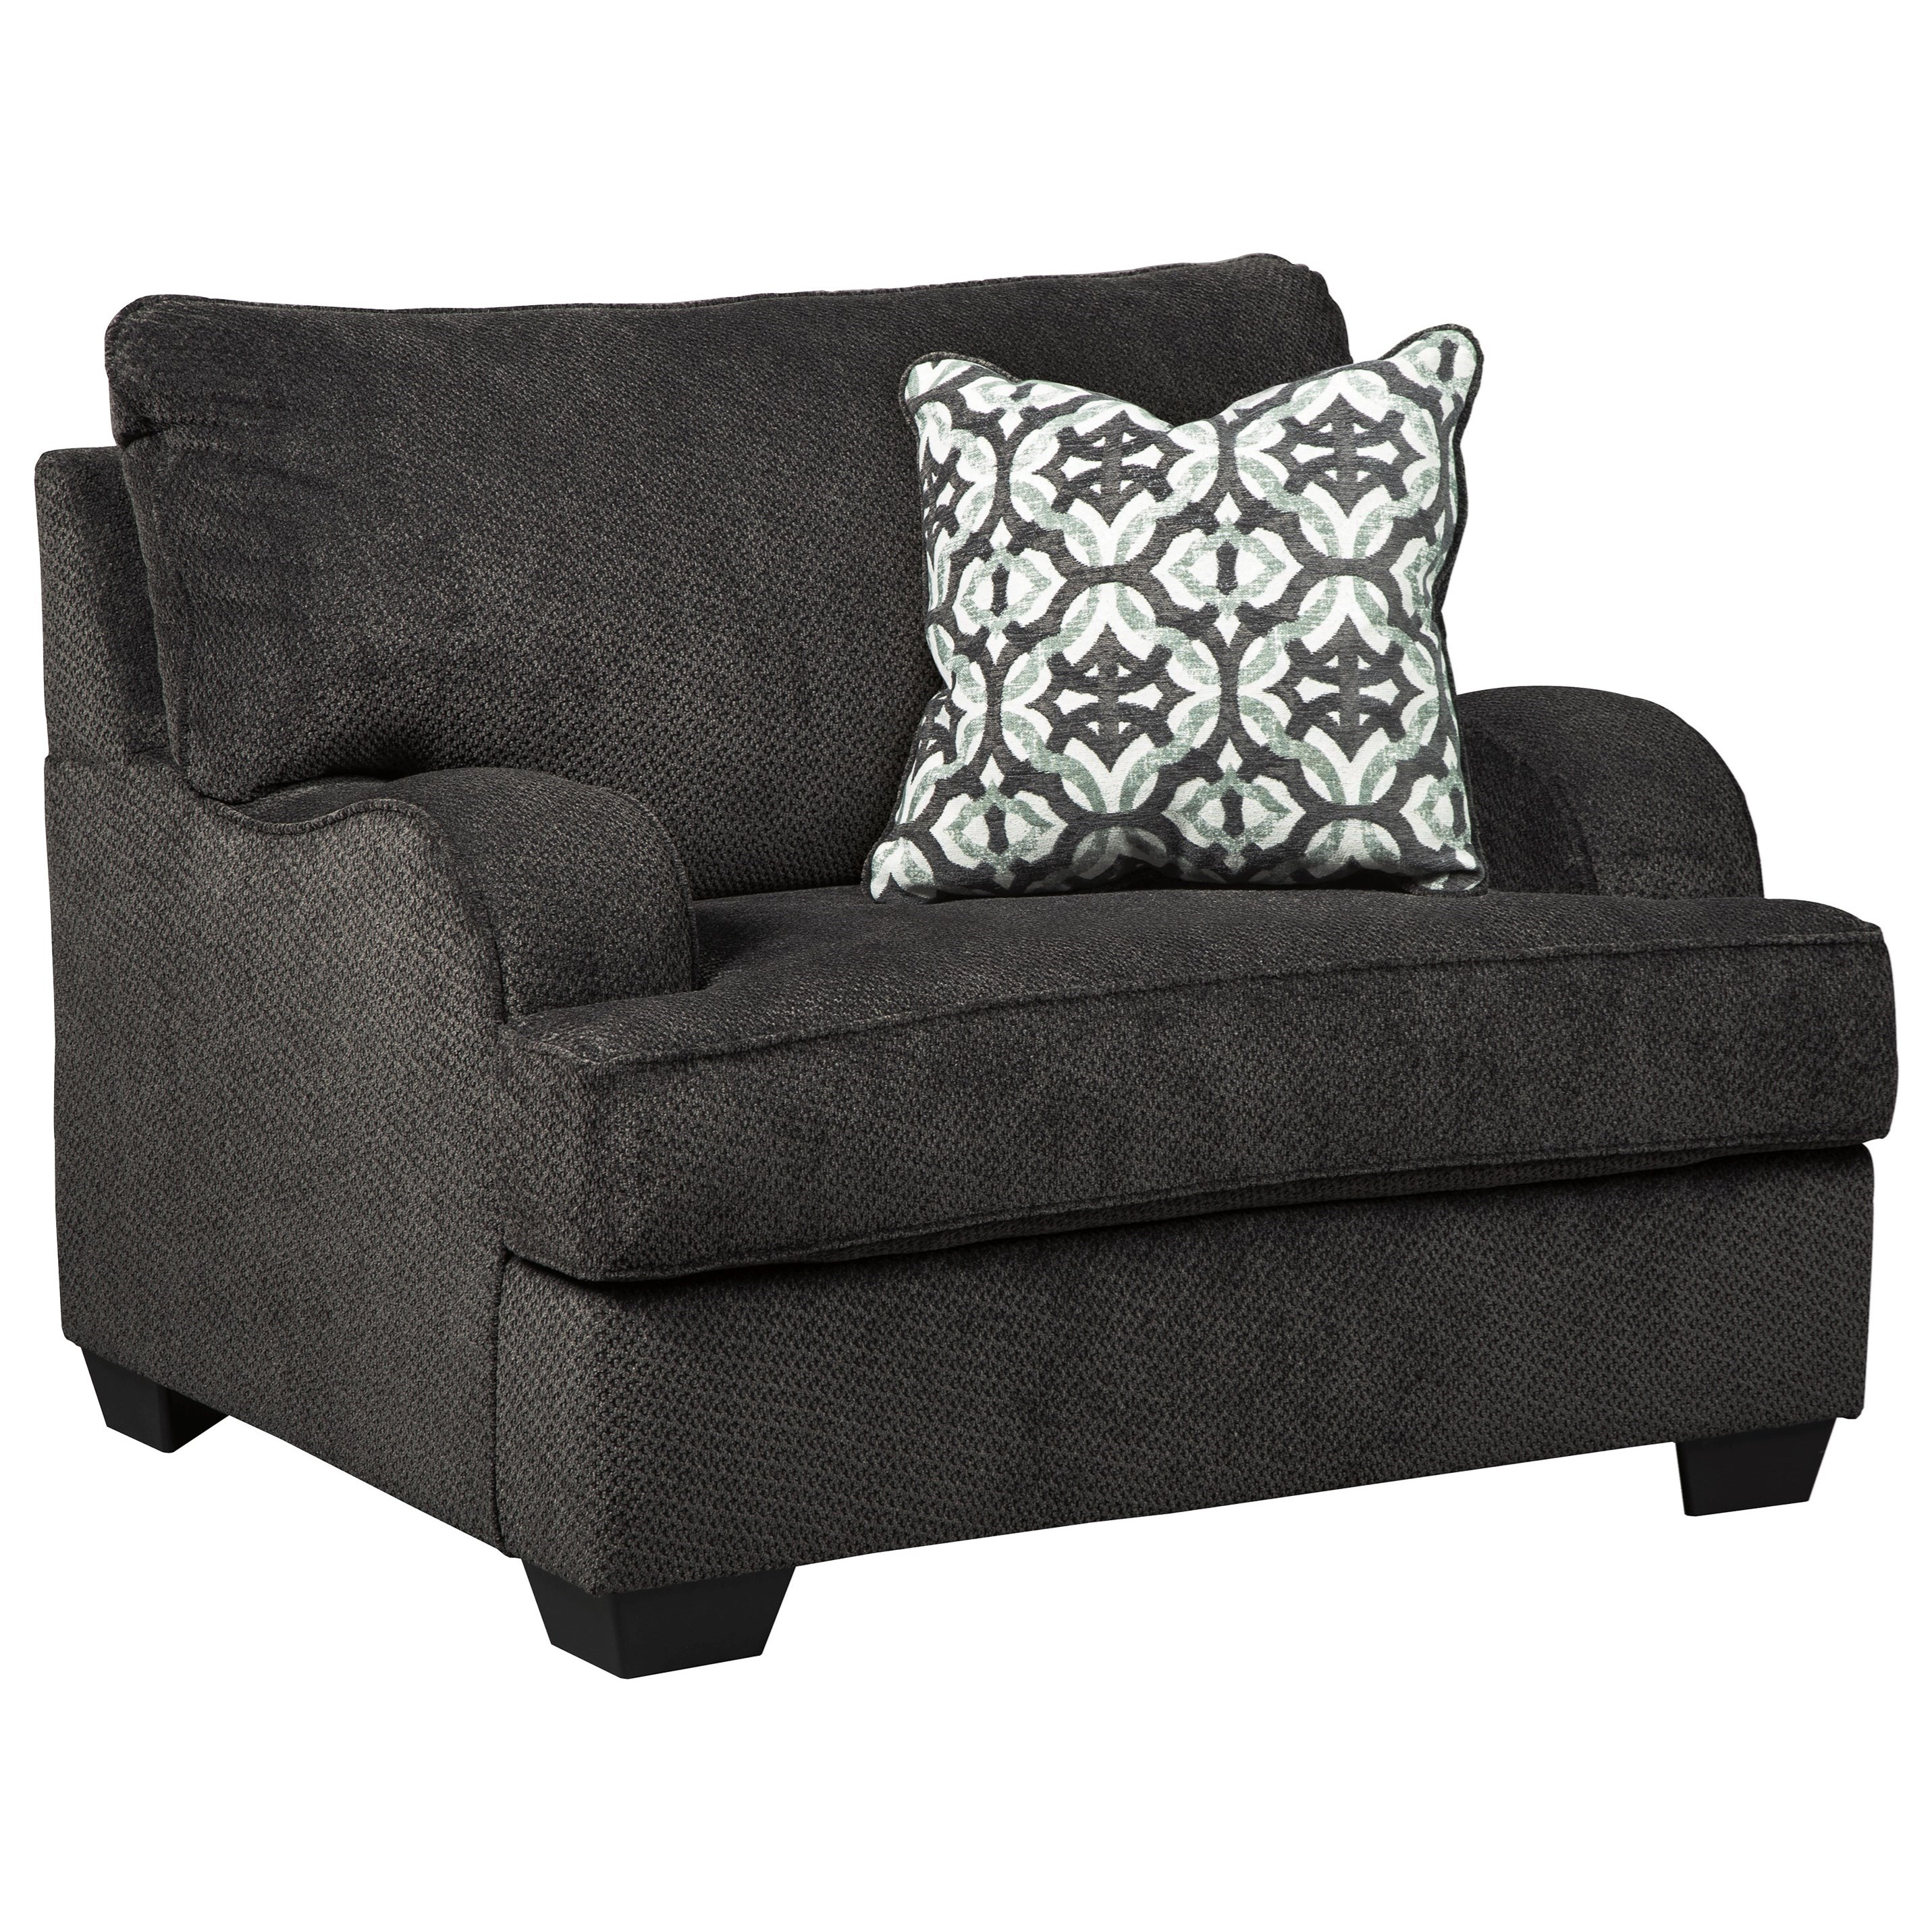 Charenton Chair and a Half by Benchcraft at Value City Furniture